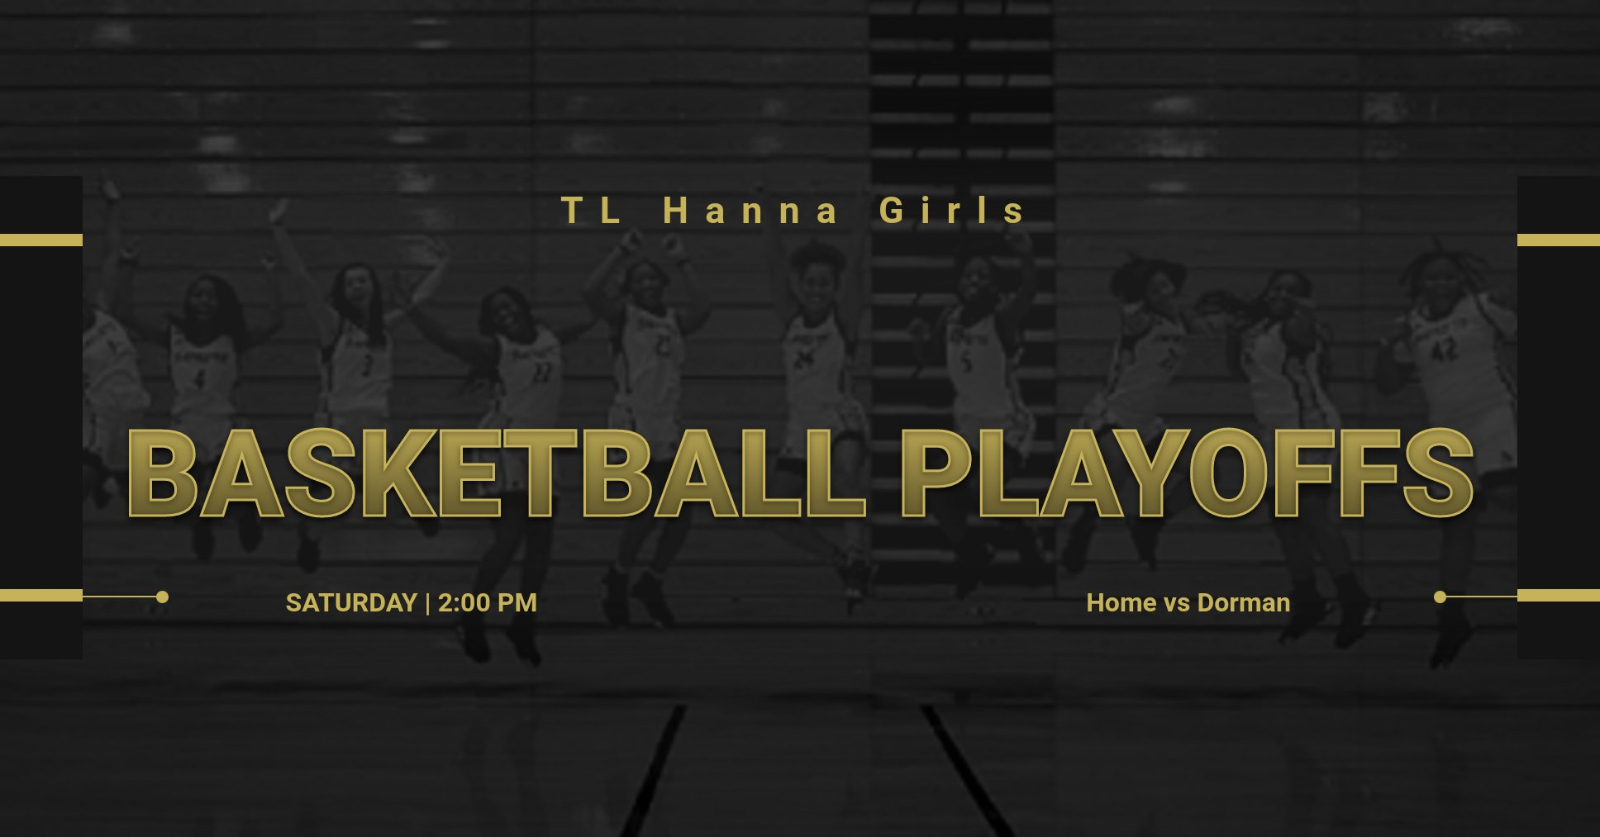 Girls Basketball Re-scheduled for Saturday-2pm